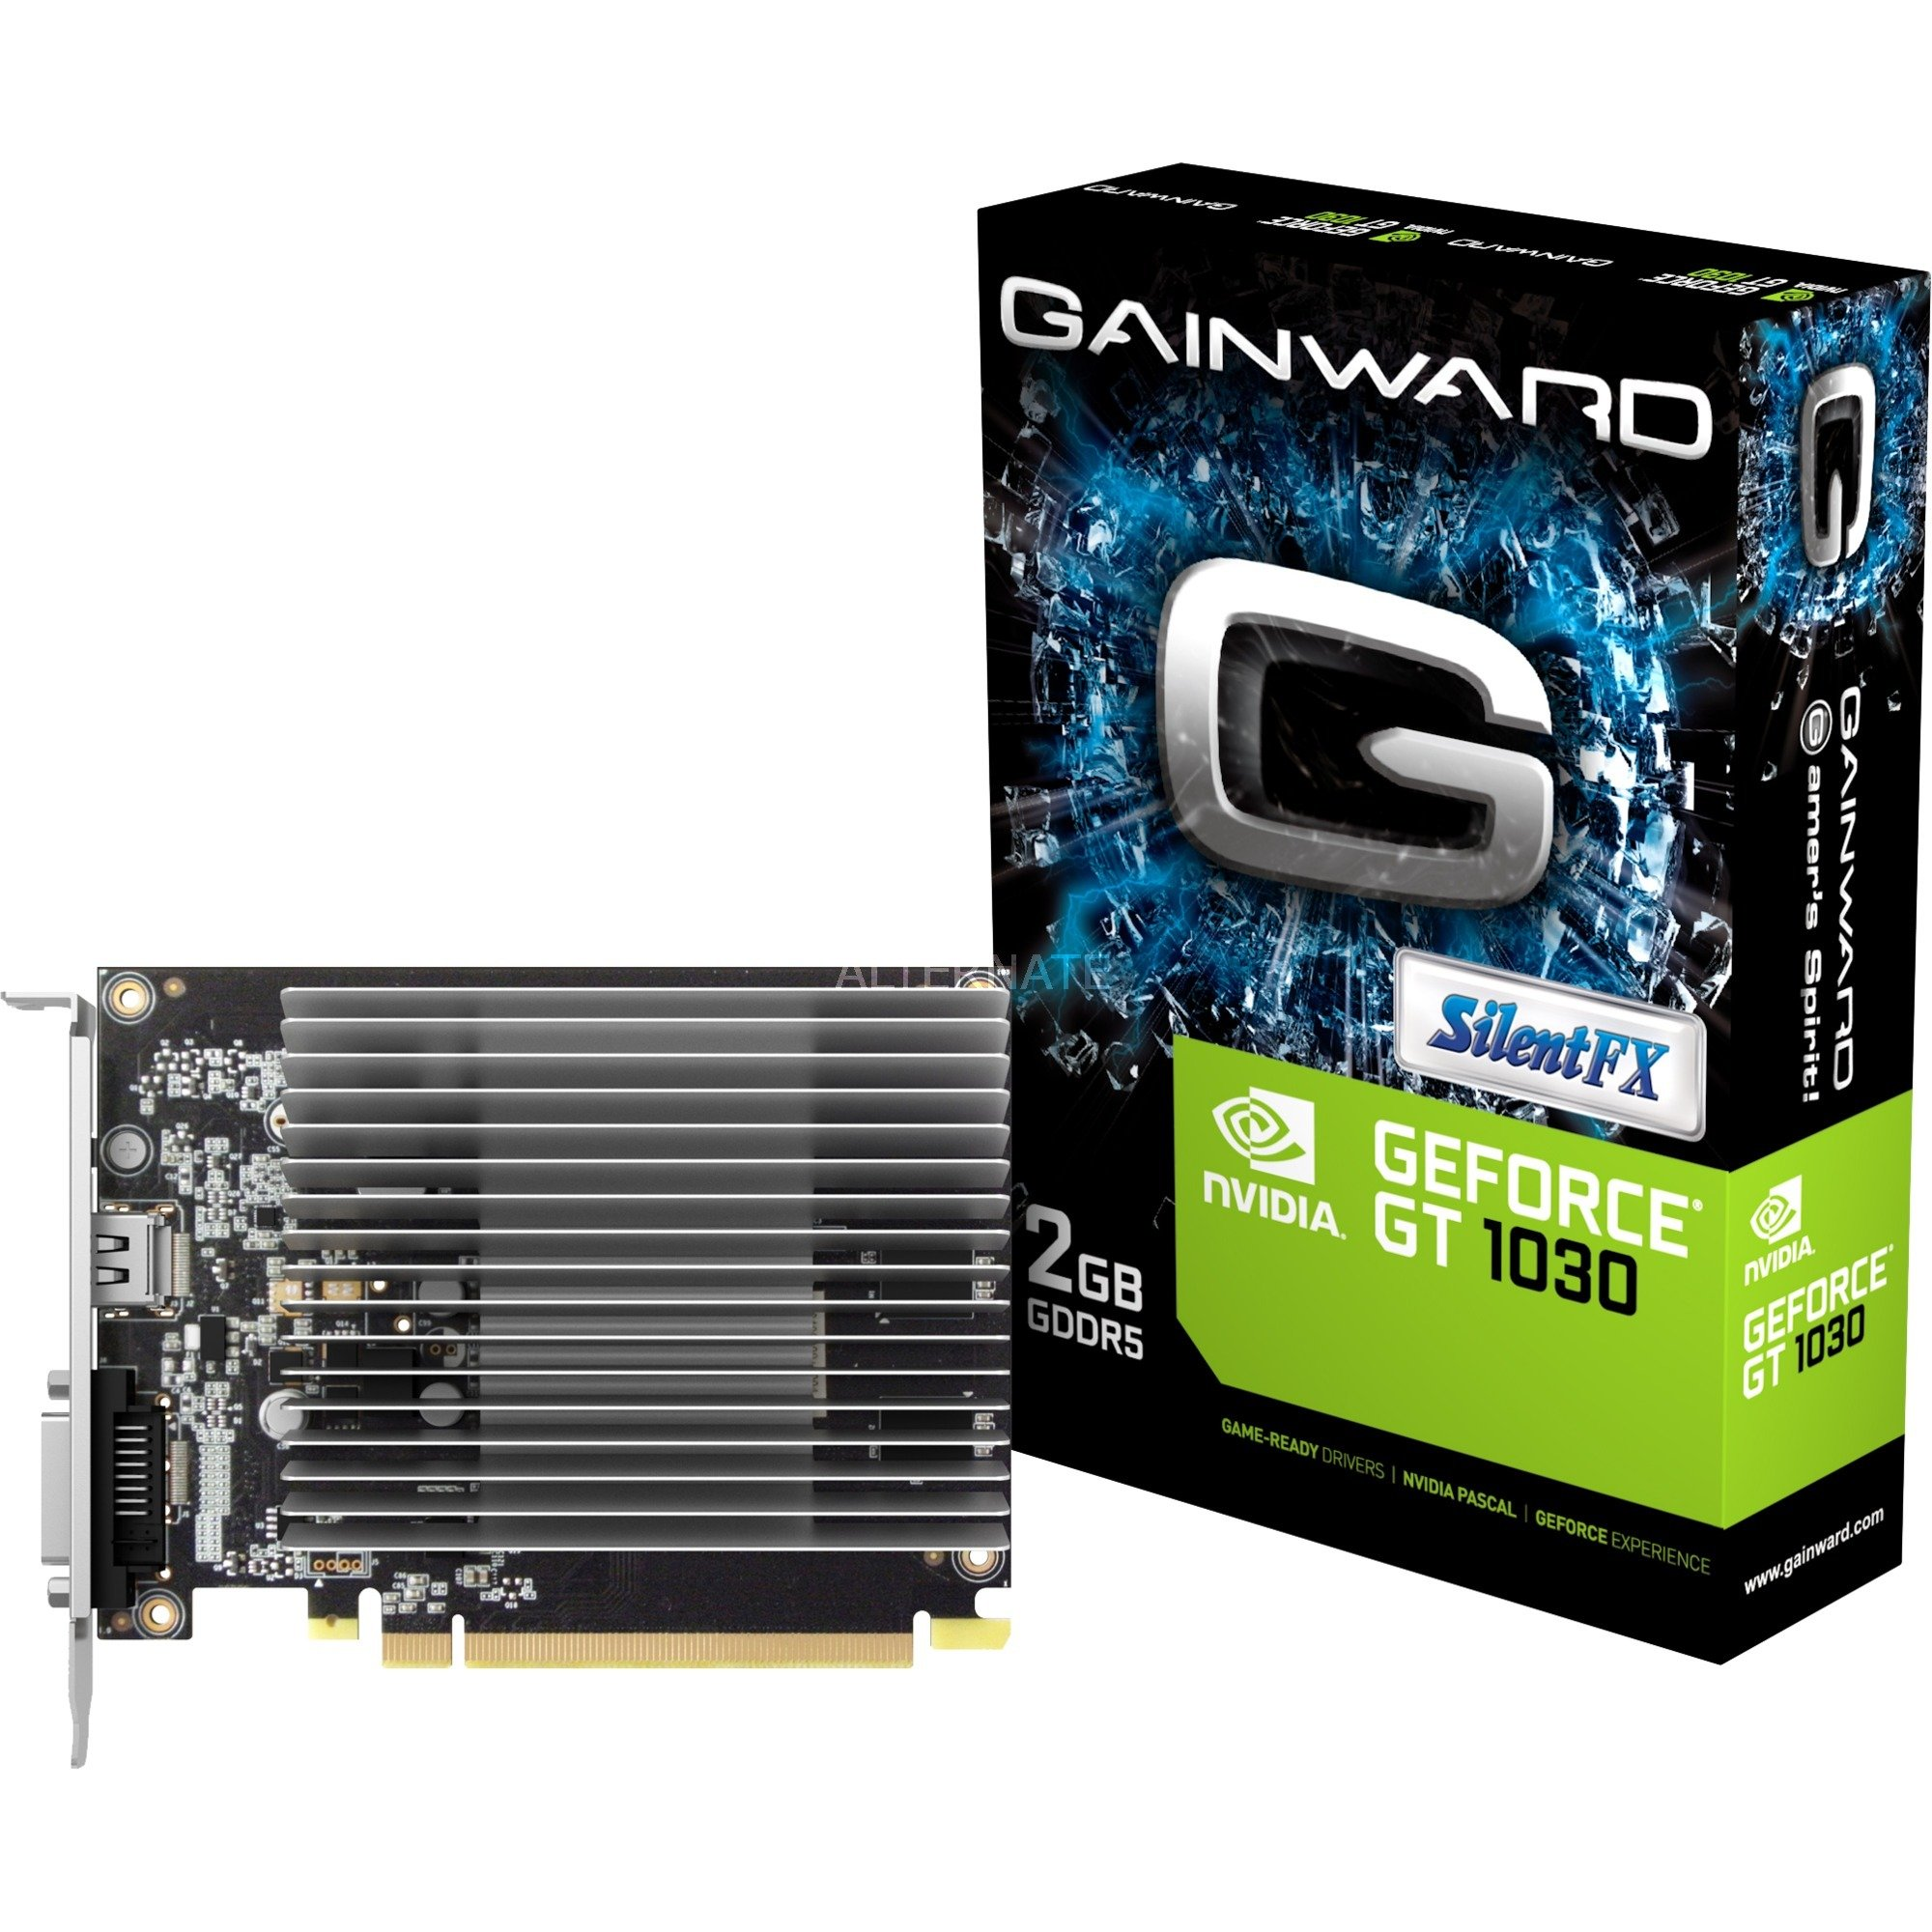 426018336-3927 GeForce GT 1030 2Go GDDR5, Carte graphique